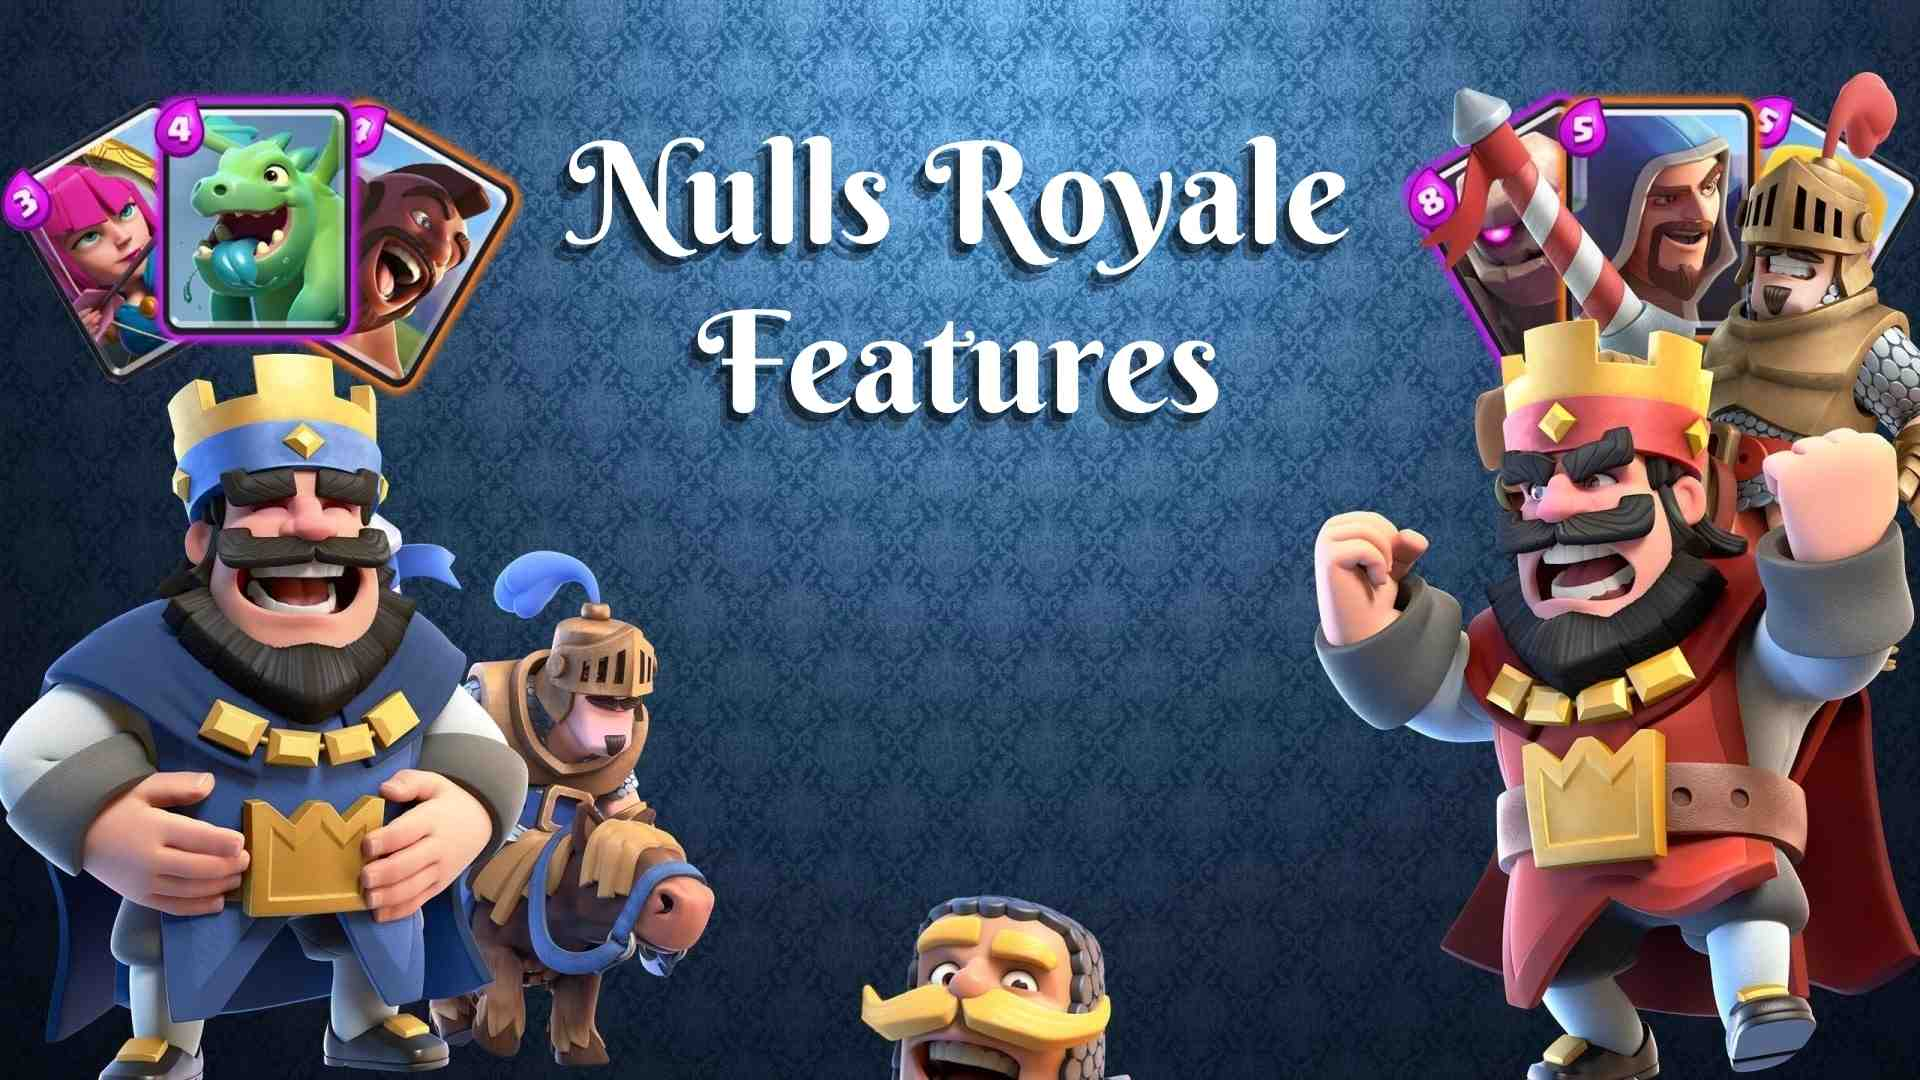 Nulls Royale Features